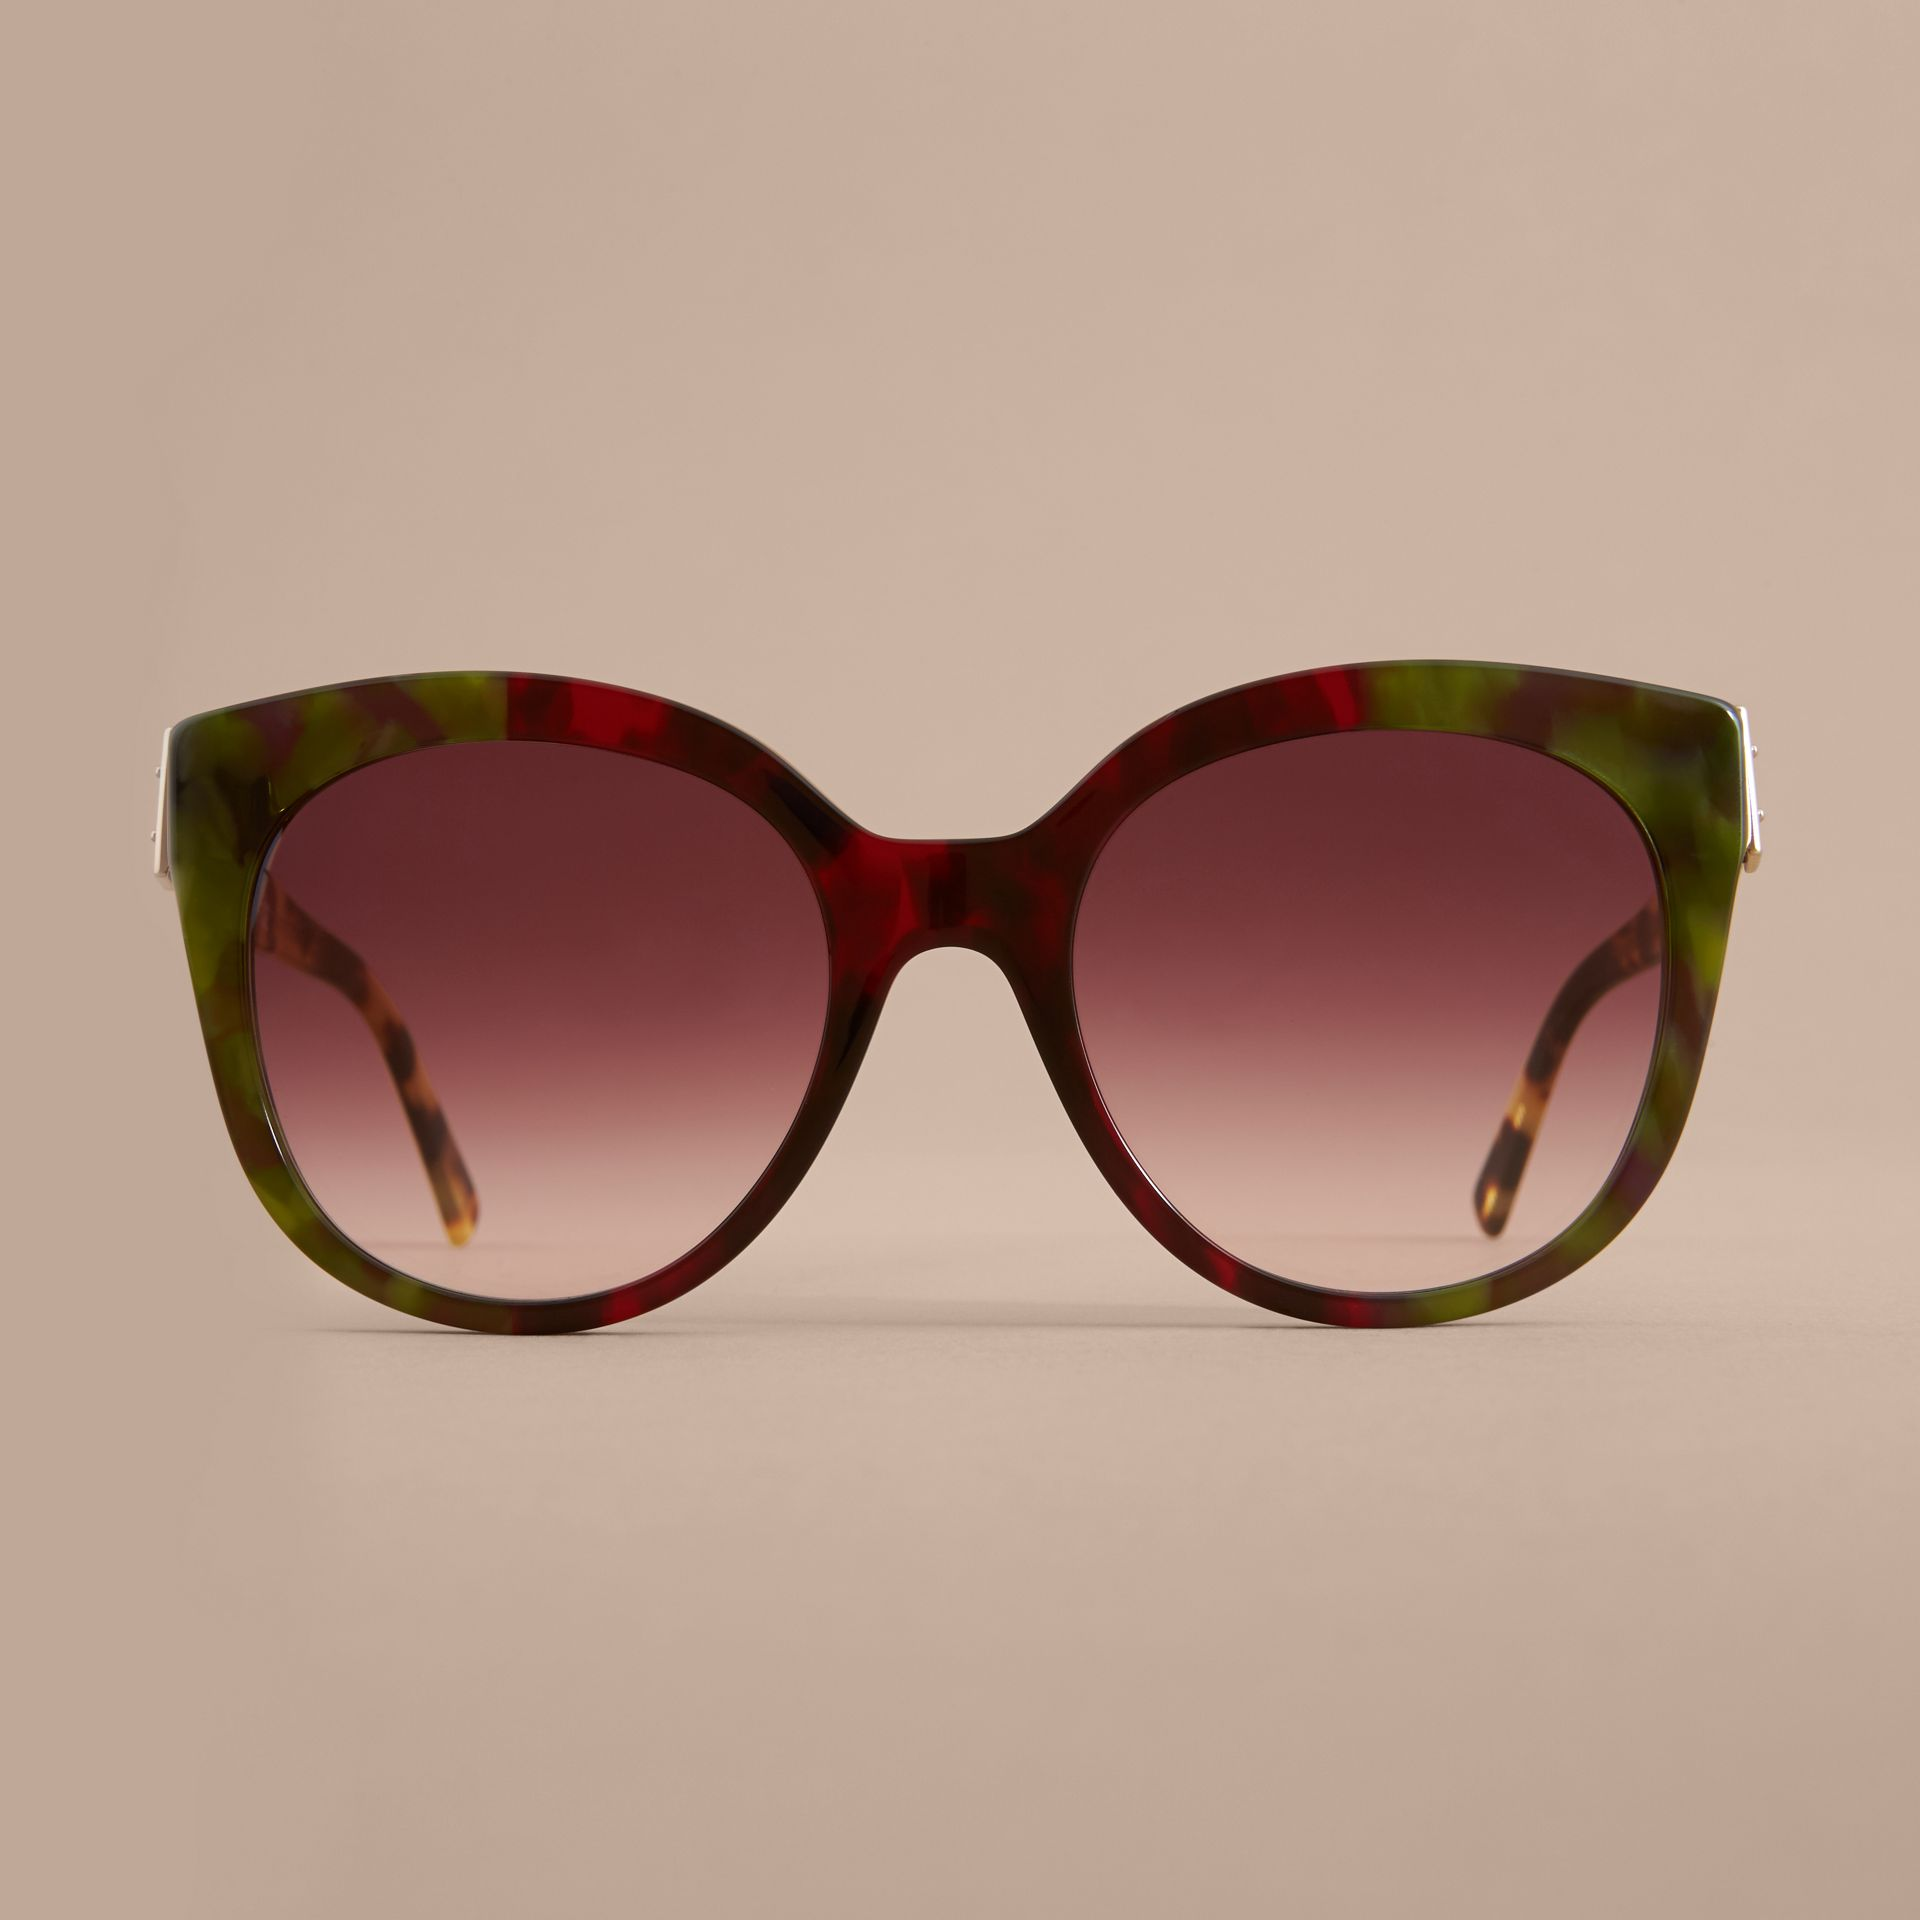 Buckle Detail Cat-eye Frame Sunglasses in Cardinal Red - Women | Burberry Australia - gallery image 2